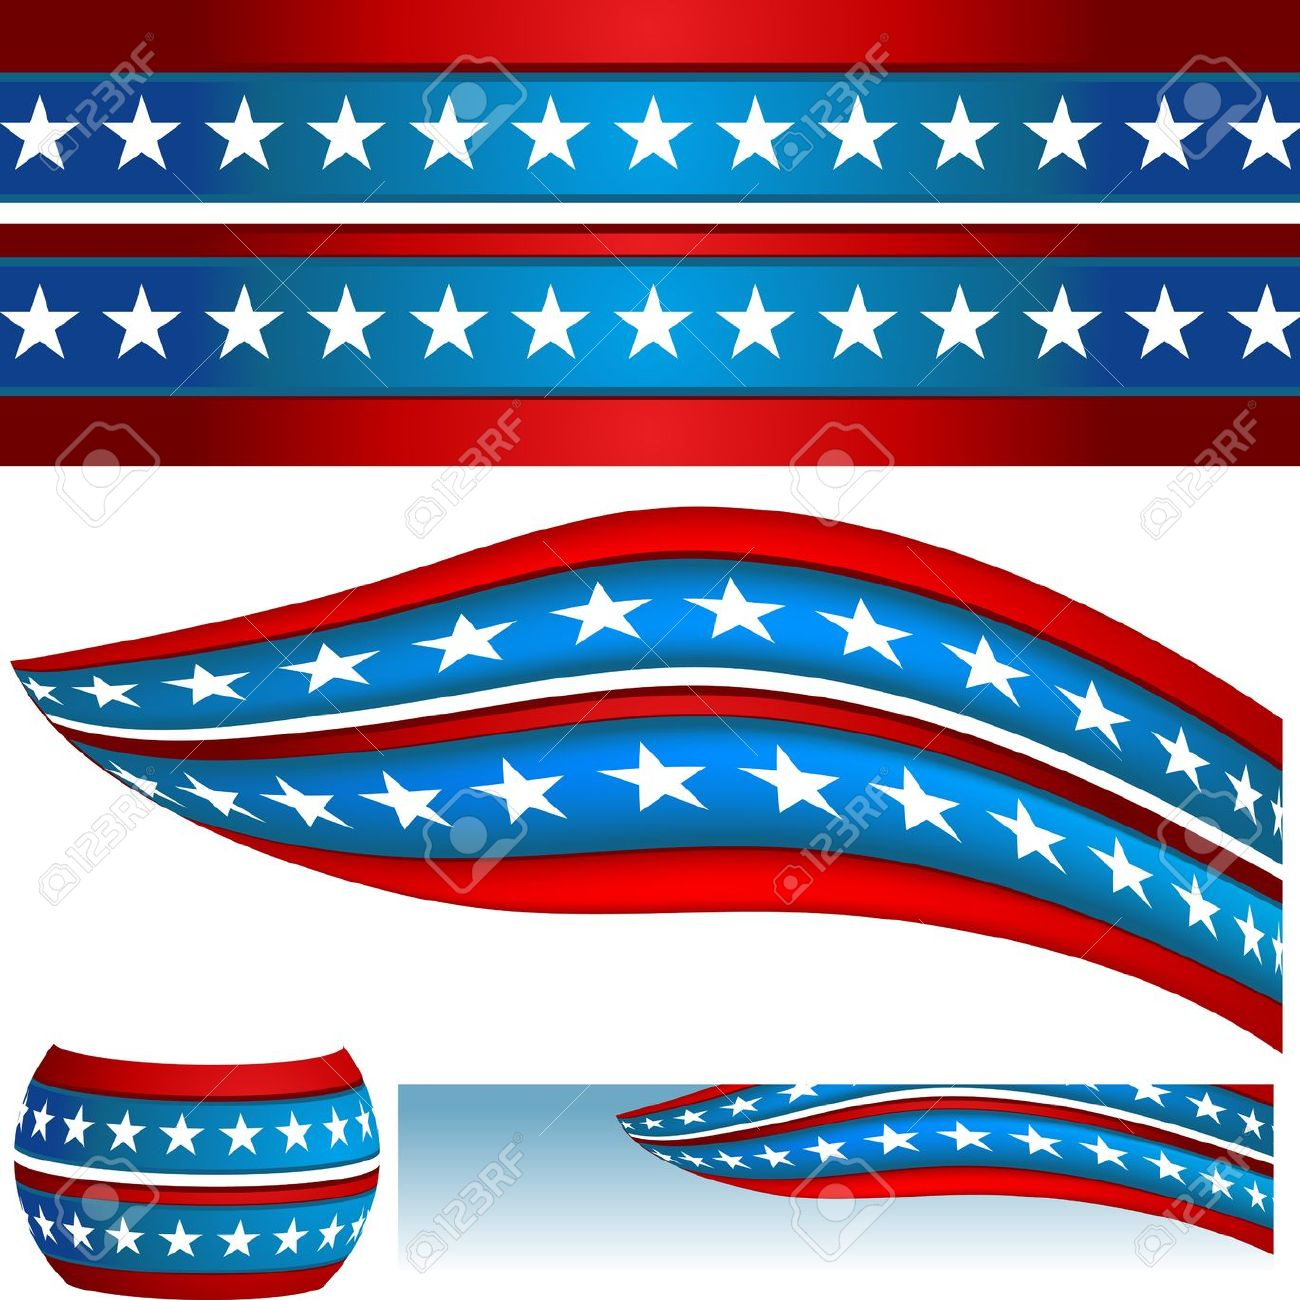 Us flag stripes clipart clip free download Abstract american star and flag clipart - ClipartFest clip free download